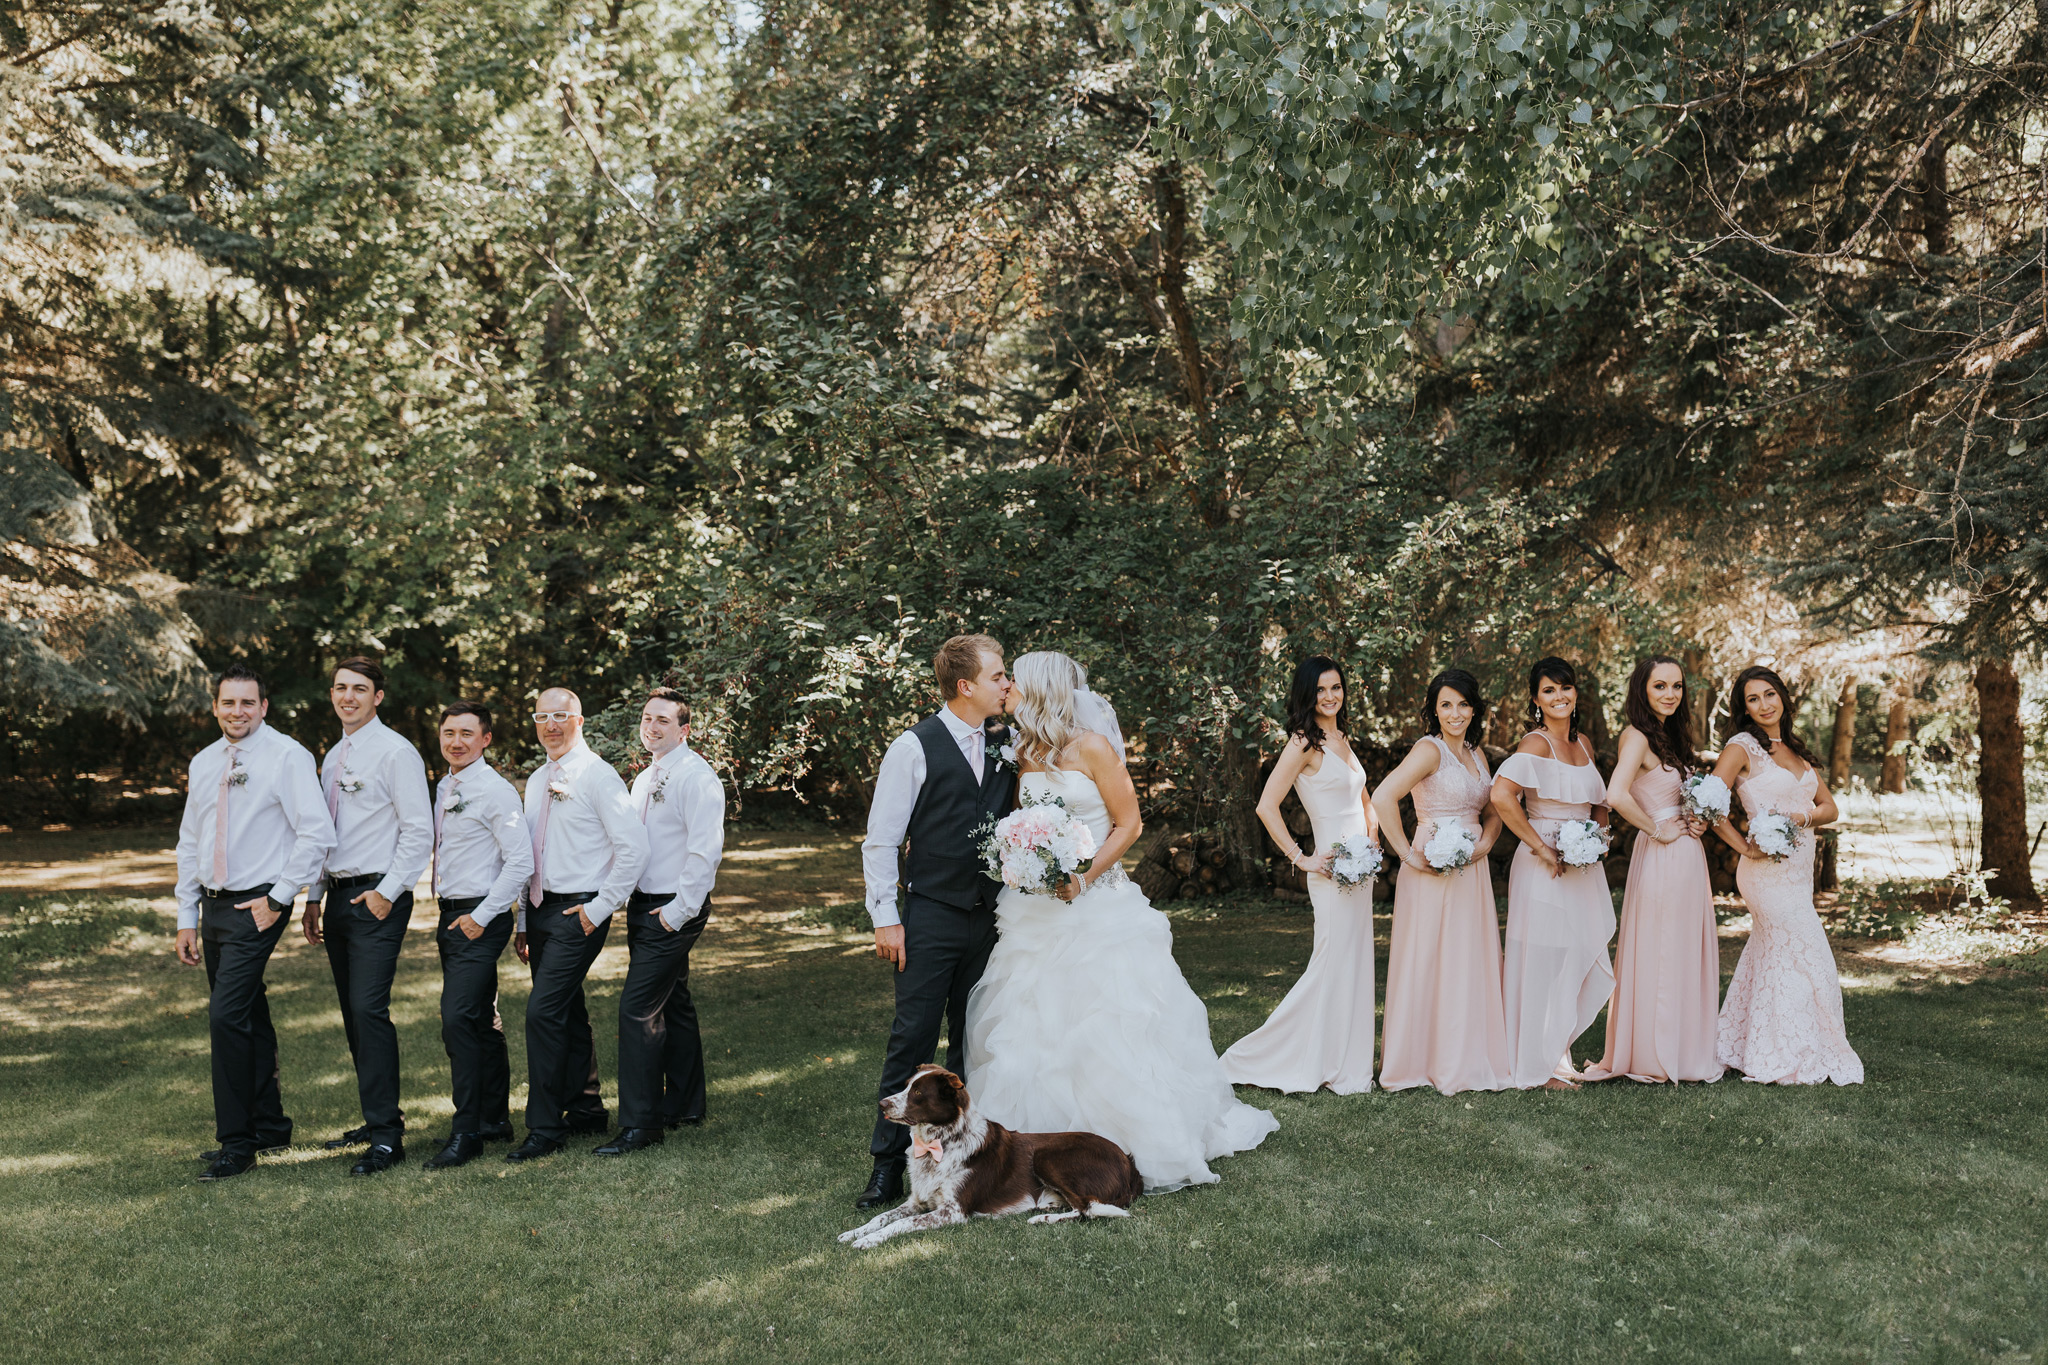 bride and groom kiss with bridal party behind them